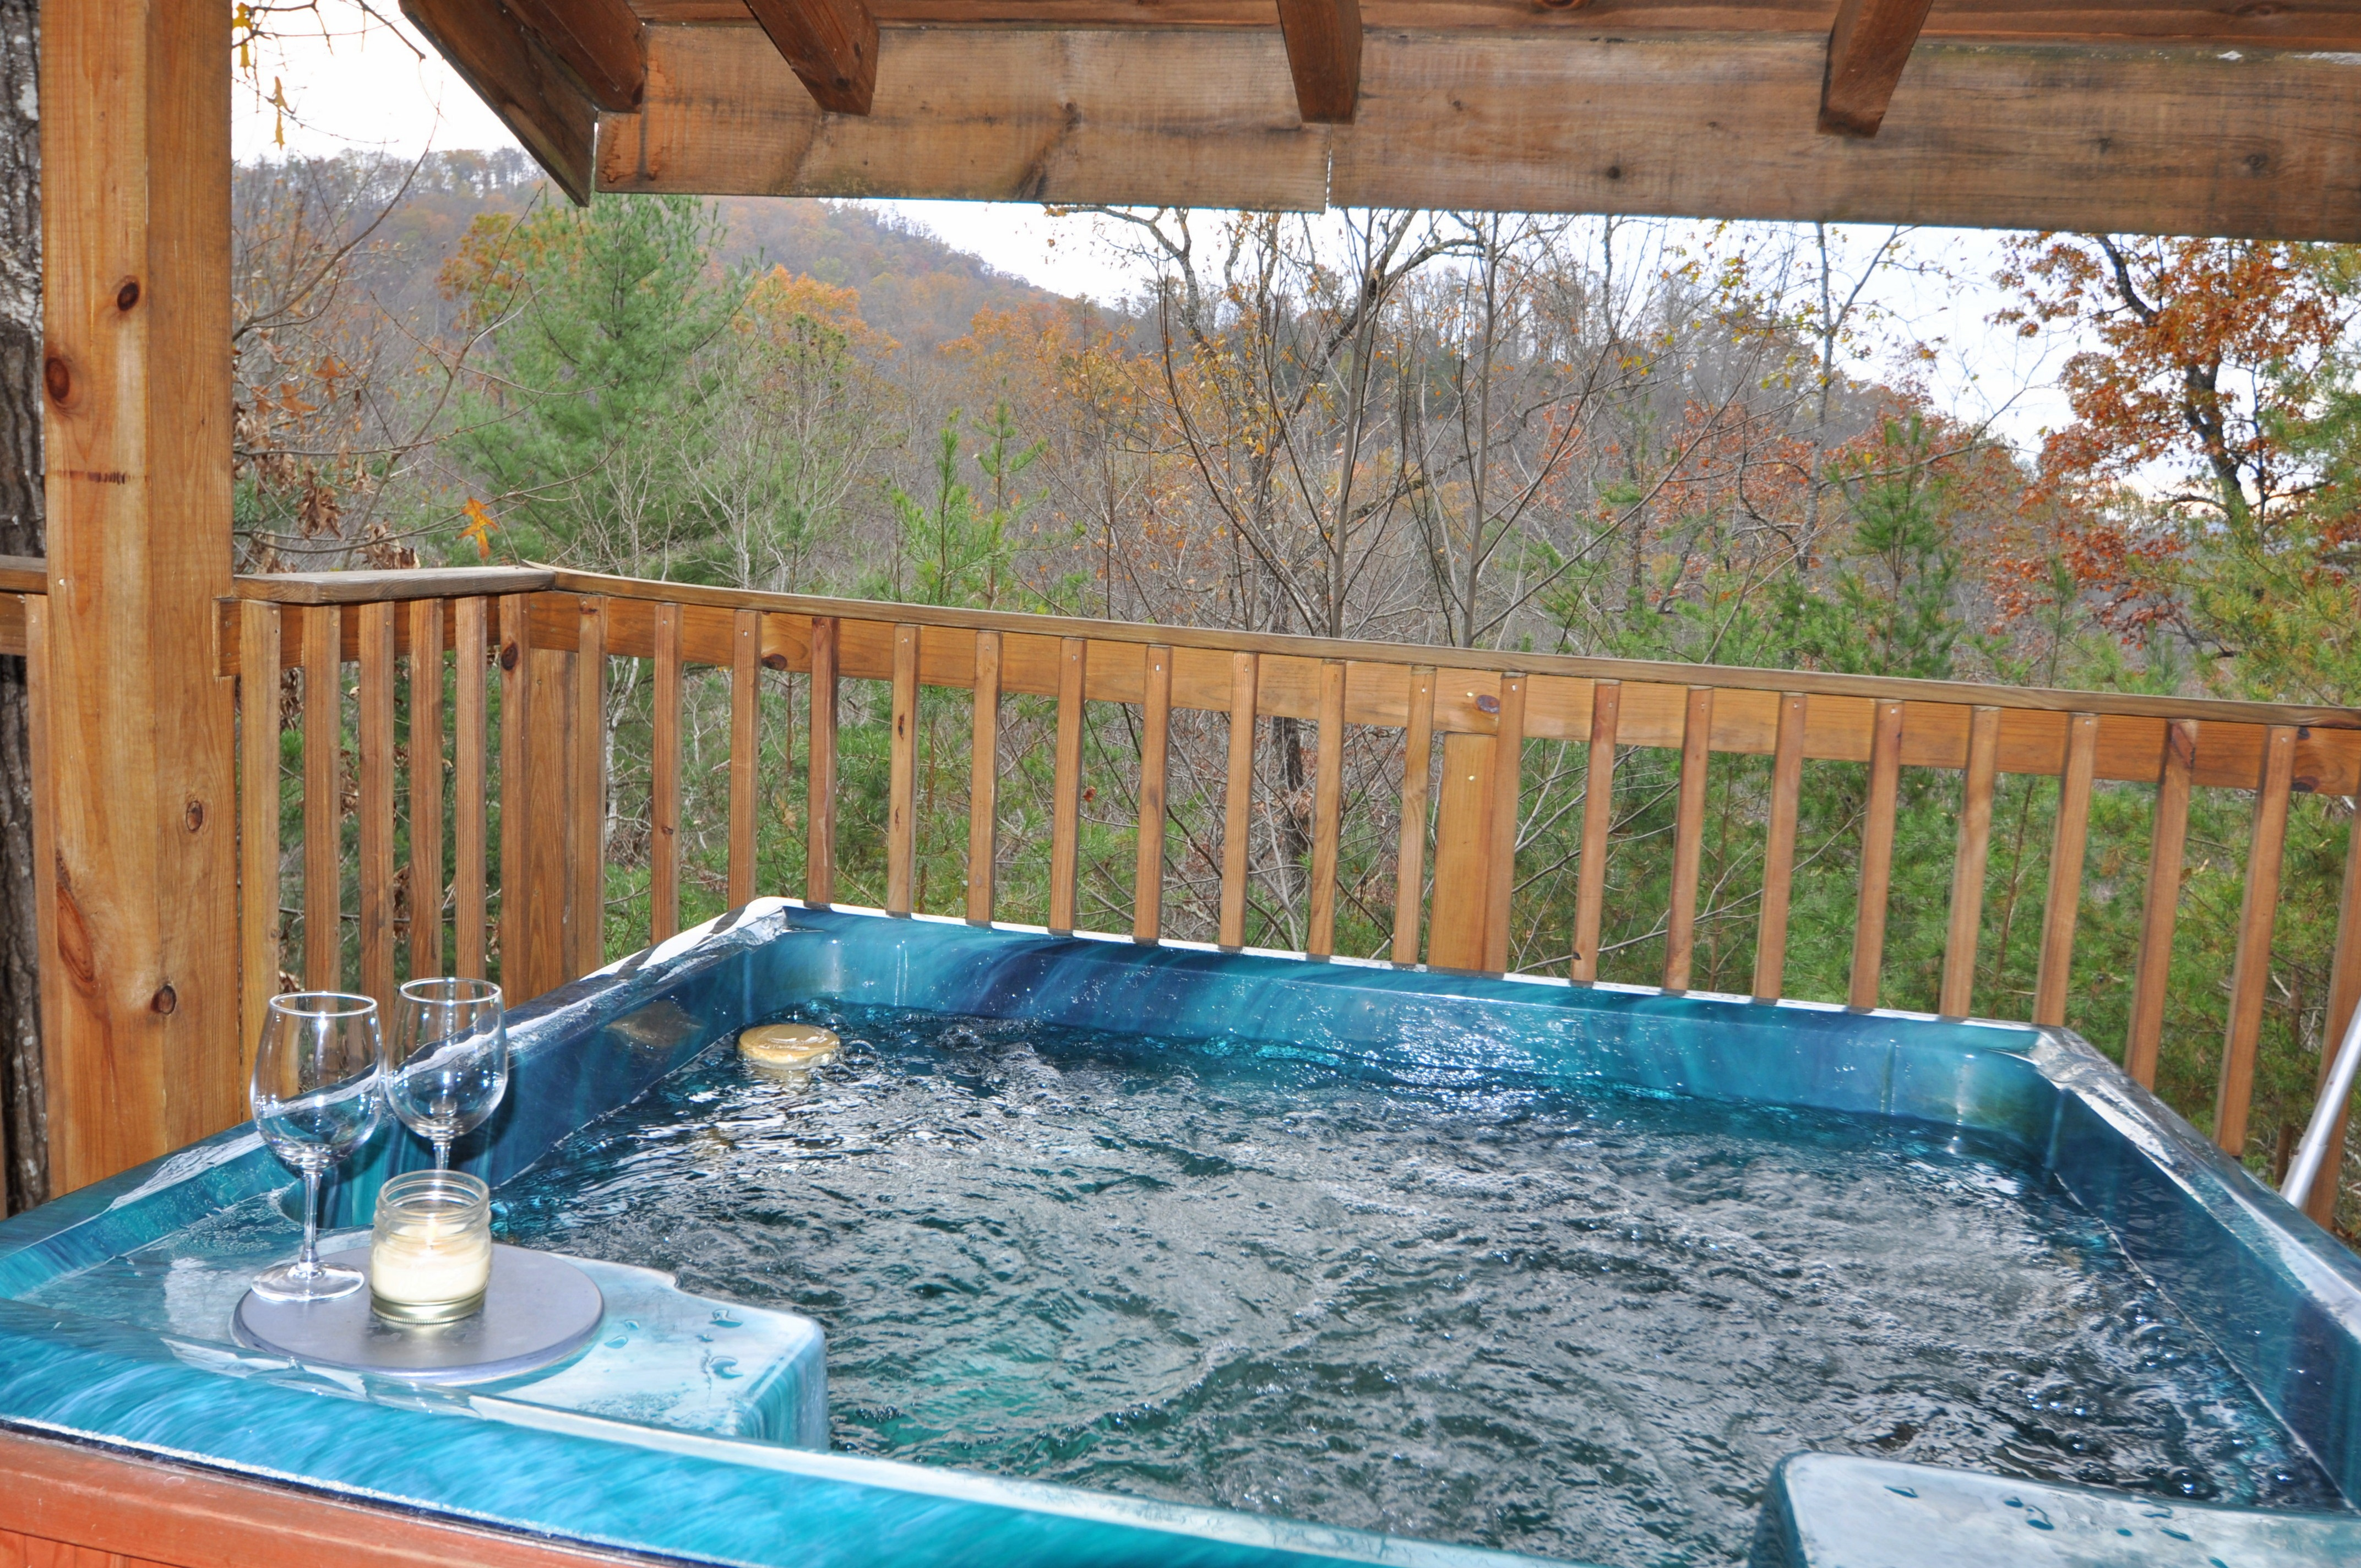 mansion carolina pool pigeon luxury parkview paradise lodge tn gatlinburg cabins pictures sleeps bedroom curtain greenstone large at cabin tennessee sevierville forge georgia north with river hidden mountain indoor in